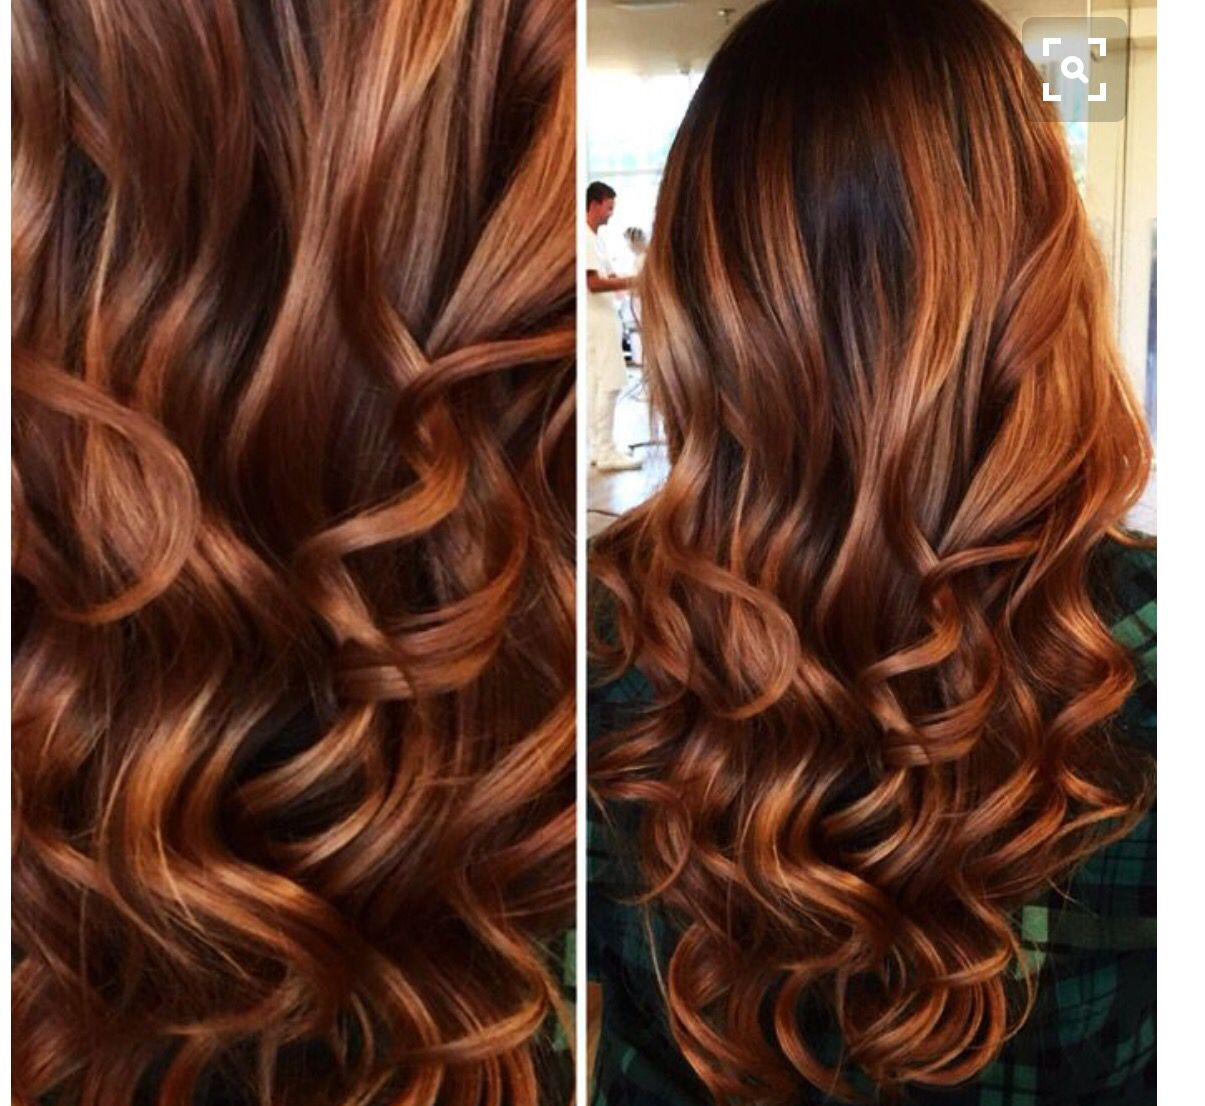 Ruivo Cobre Mechas Caramel Pinterest Hair Hair Styles And